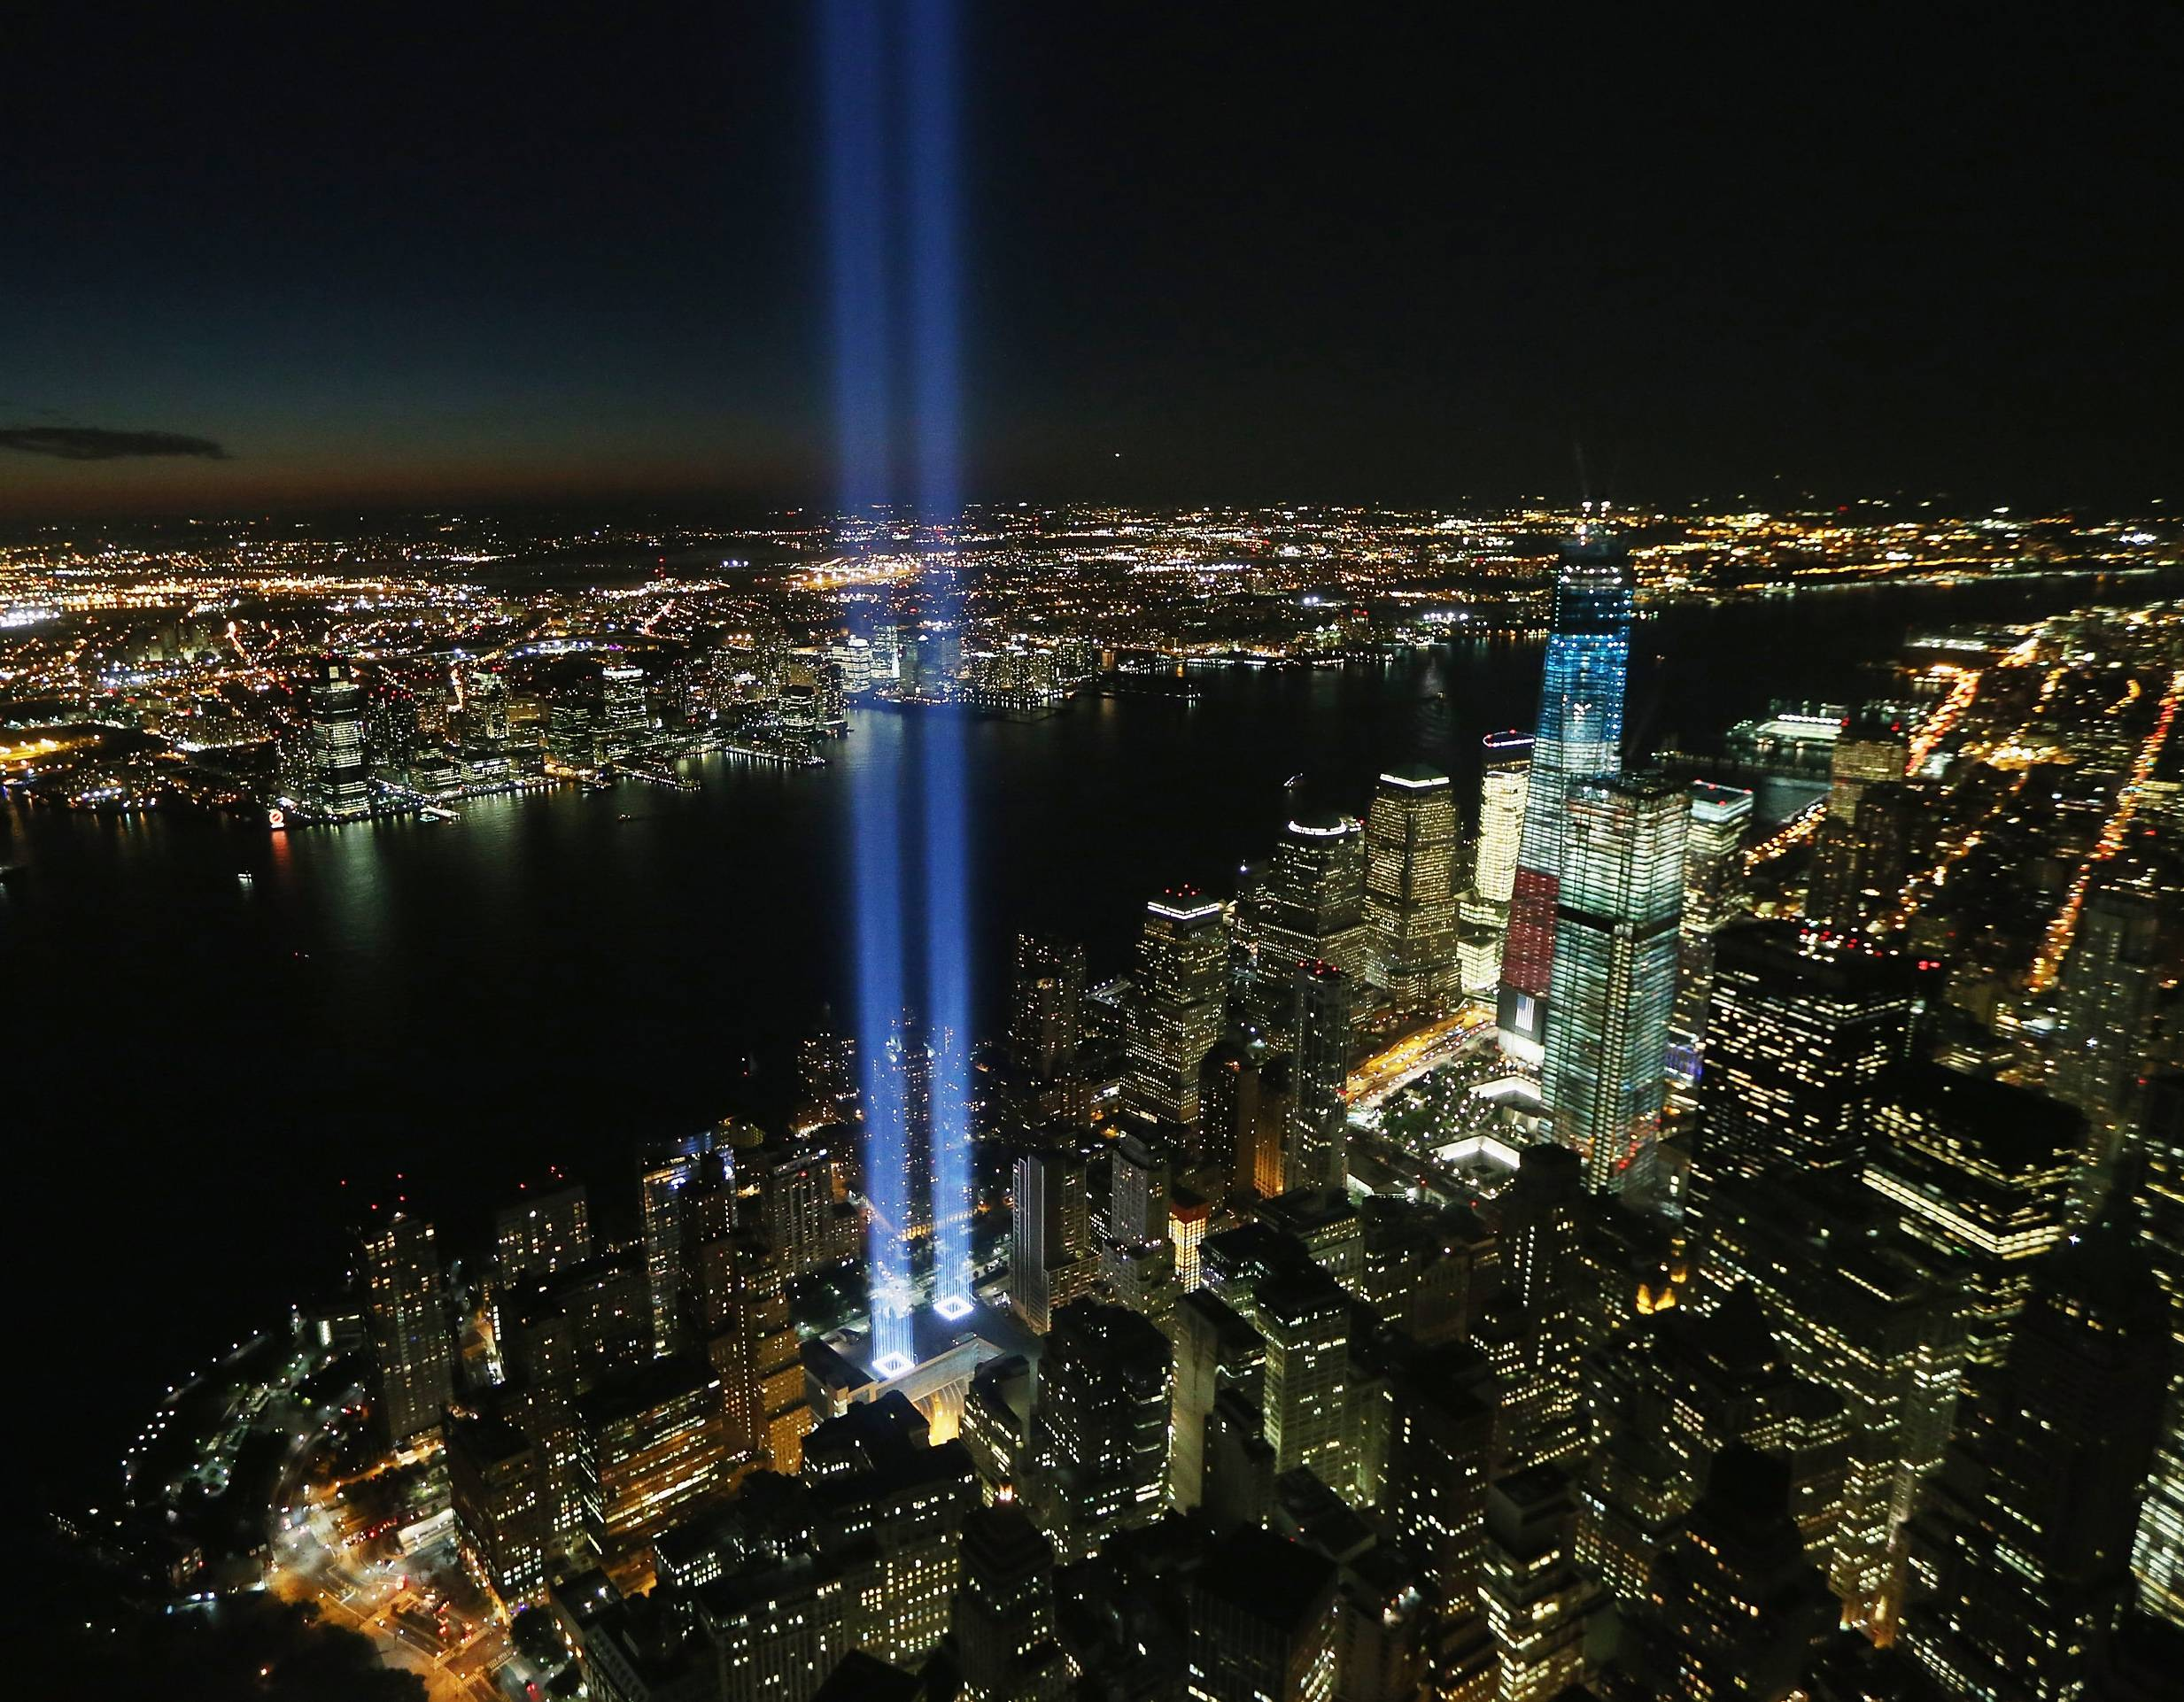 Prayers Up - And let's not forget to keep all those lost and who lost loved ones in the tragedy of 9/11 in our hearts and on our minds today as we commemorate the 12th anniversary of the event.(Photo: Mario Tama/Getty Images)